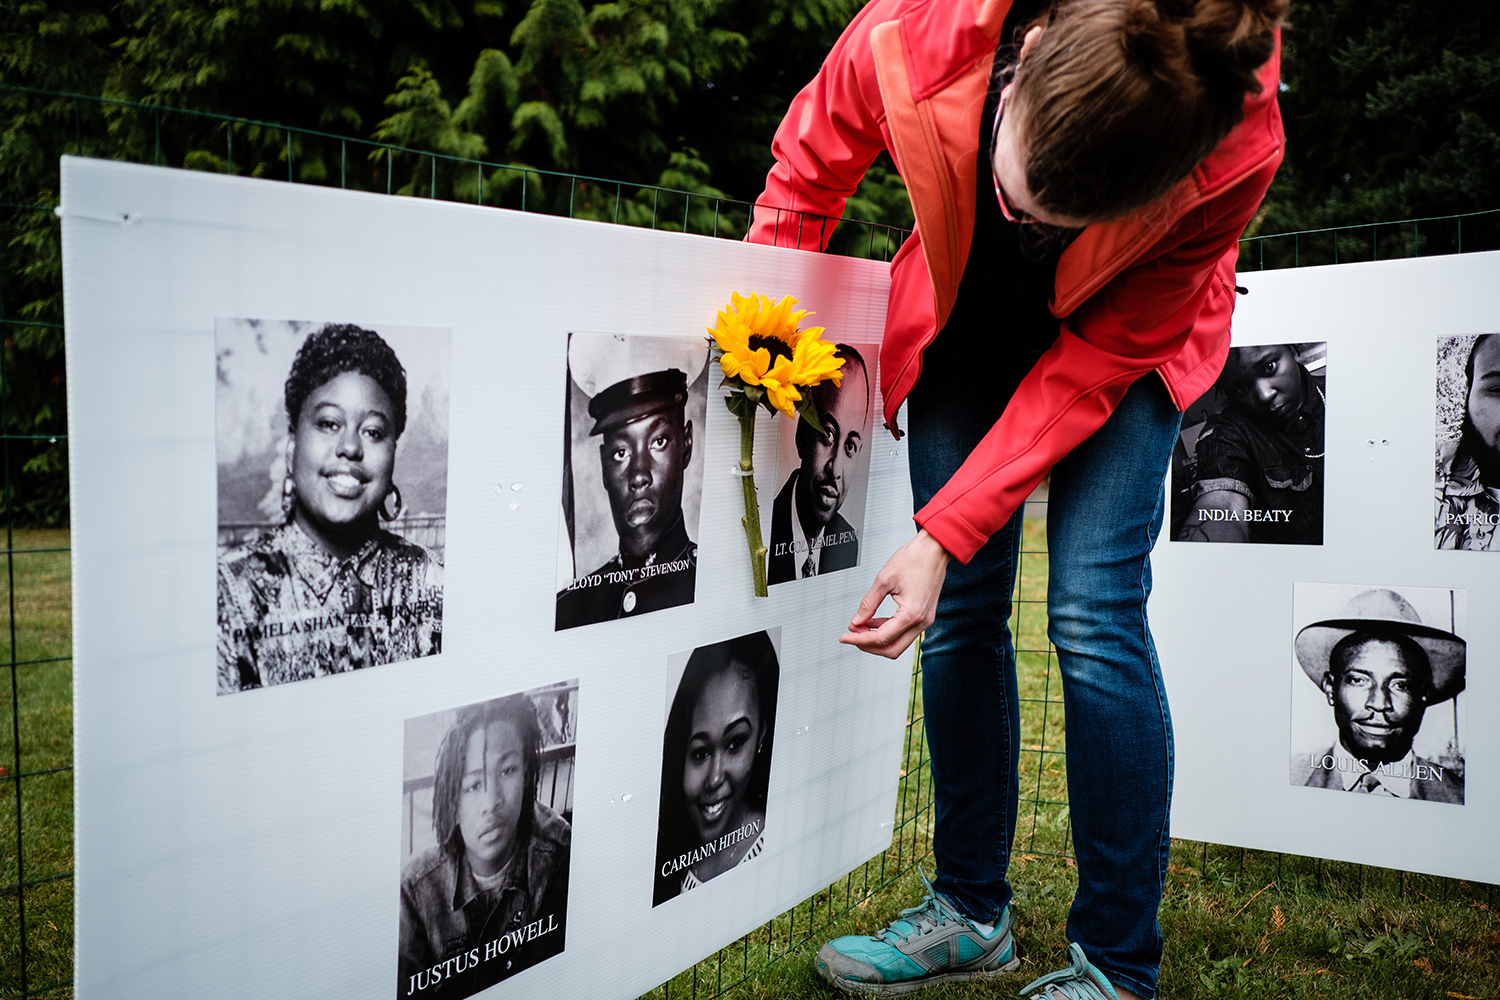 "The 'Say Their Names Memorial' was installed in Kirkland this week, and is an exhibit honoring Black lives lost to systemic racism and will be open to the public through November outside St. John's Episcopal Church on State St. The grassroots initiative started in Portland, Oregon on Juneteenth, and since then volunteers have organized memorials in more than 25 locations across the United States.{&nbsp;}<a  href=""https://nam04.safelinks.protection.outlook.com/?url=https%3A%2F%2Fwww.saytheirnamesmemorials.com%2F&data=04%7C01%7Cbsthorson%40sbgtv.com%7Caade81b34d82467403d908d8745d0b12%7C897dbc0dc02d43479a713e589c67f8aa%7C0%7C0%7C637387290259570154%7CUnknown%7CTWFpbGZsb3d8eyJWIjoiMC4wLjAwMDAiLCJQIjoiV2luMzIiLCJBTiI6Ik1haWwiLCJXVCI6Mn0%3D%7C1000&sdata=1DxfEMa5Hryf0qHDIuqWRp1PpSjcQ33AjWZ2wXXwUSk%3D&reserved=0"" target=""_blank"" title=""https://nam04.safelinks.protection.outlook.com/?url=https%3A%2F%2Fwww.saytheirnamesmemorials.com%2F&data=04%7C01%7Cbsthorson%40sbgtv.com%7Caade81b34d82467403d908d8745d0b12%7C897dbc0dc02d43479a713e589c67f8aa%7C0%7C0%7C637387290259570154%7CUnknown%7CTWFpbGZsb3d8eyJWIjoiMC4wLjAwMDAiLCJQIjoiV2luMzIiLCJBTiI6Ik1haWwiLCJXVCI6Mn0%3D%7C1000&sdata=1DxfEMa5Hryf0qHDIuqWRp1PpSjcQ33AjWZ2wXXwUSk%3D&reserved=0"">The initiative{&nbsp;}</a>manages an ongoing submission-driven database that includes names, photos and bios so the team can produce traveling memorials for public exhibition as well as providing support for communities looking to create grassroots memorials in their own neighborhoods. Their aim is to facilitate conversation around systemic racism while honoring those whose lives have been taken by it. (Image:{&nbsp;} Morgan Petroski Photography)"